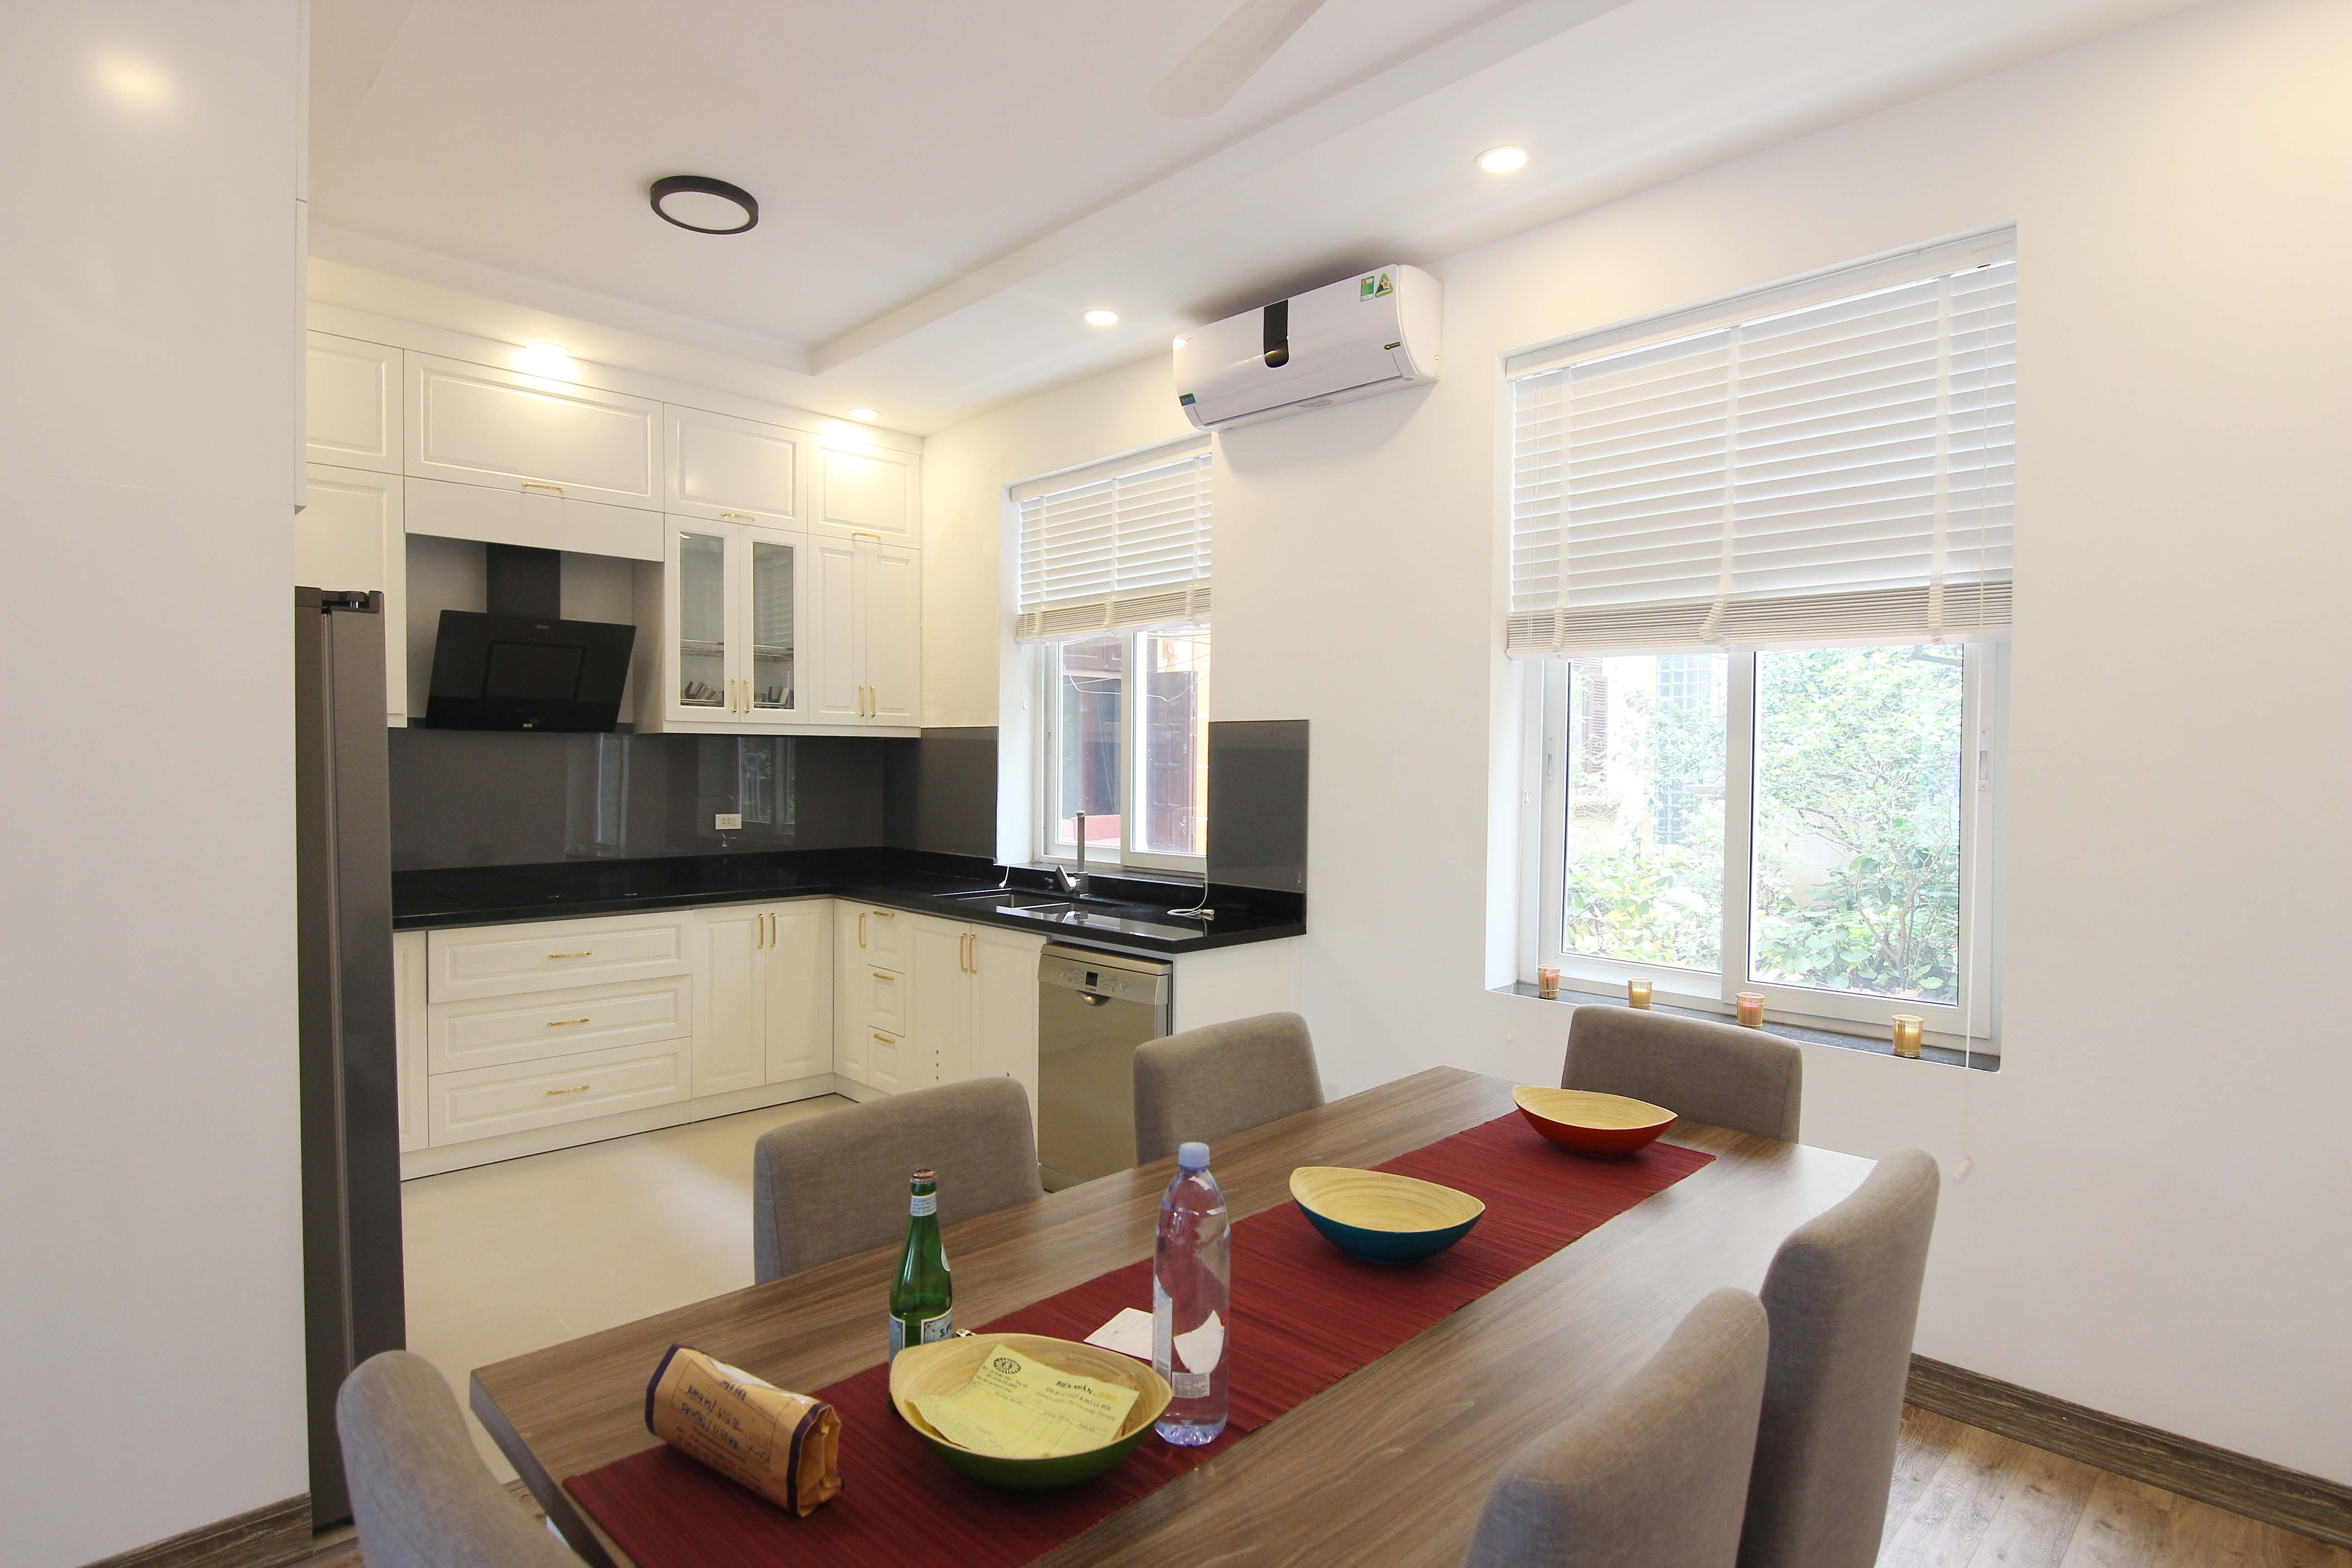 A lovely villa with 5 bedroom for rent on Xom Chua street, Tay Ho district 4